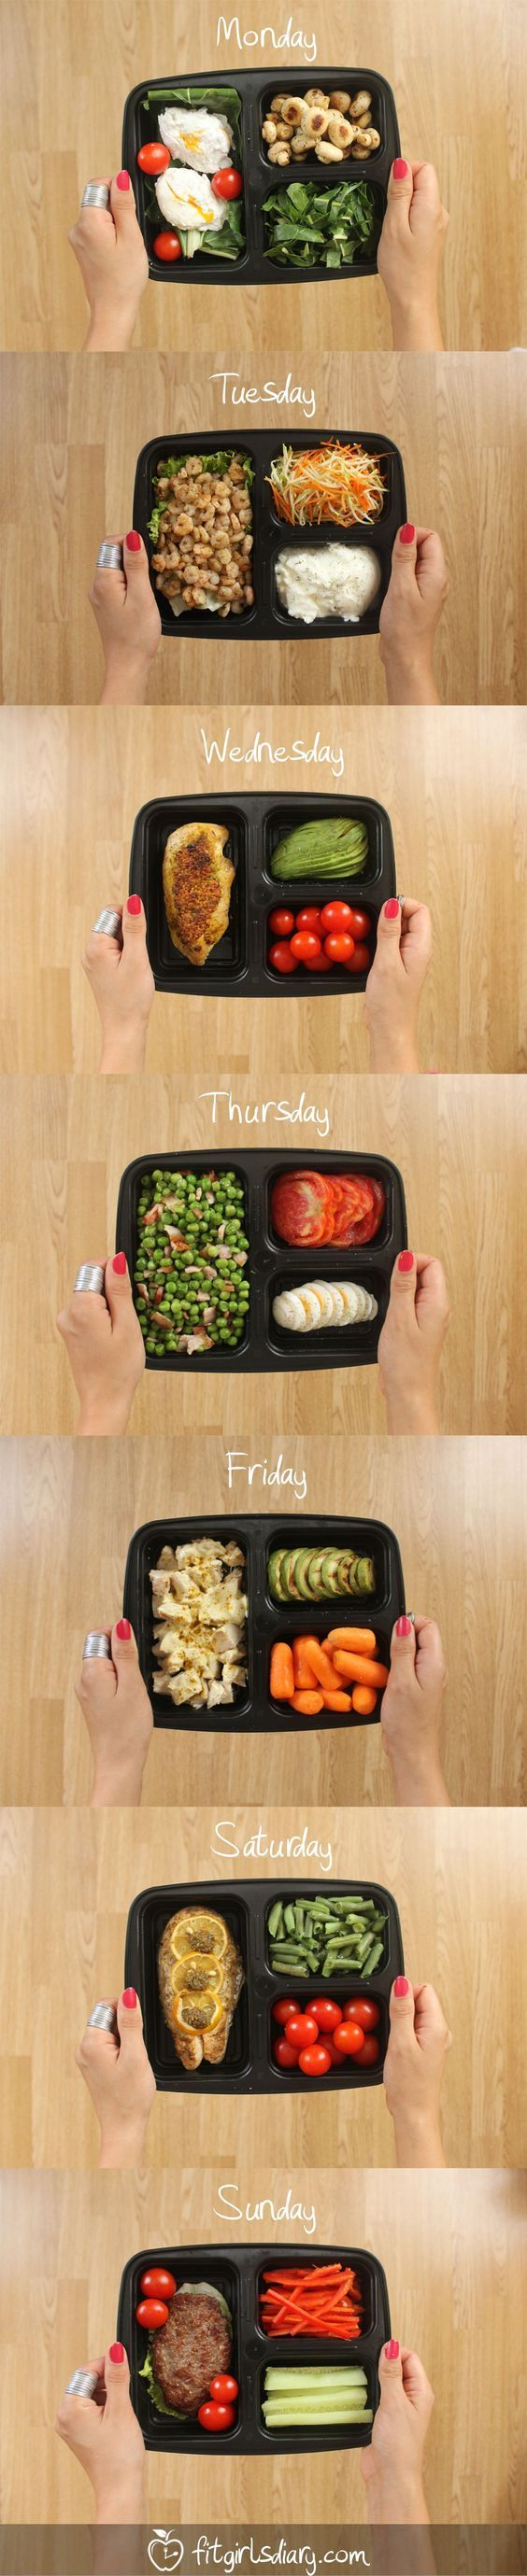 7 Days Of Healthy Meal Prep Ideas – Ready To Eat Meals and Protein On The Go Recipe